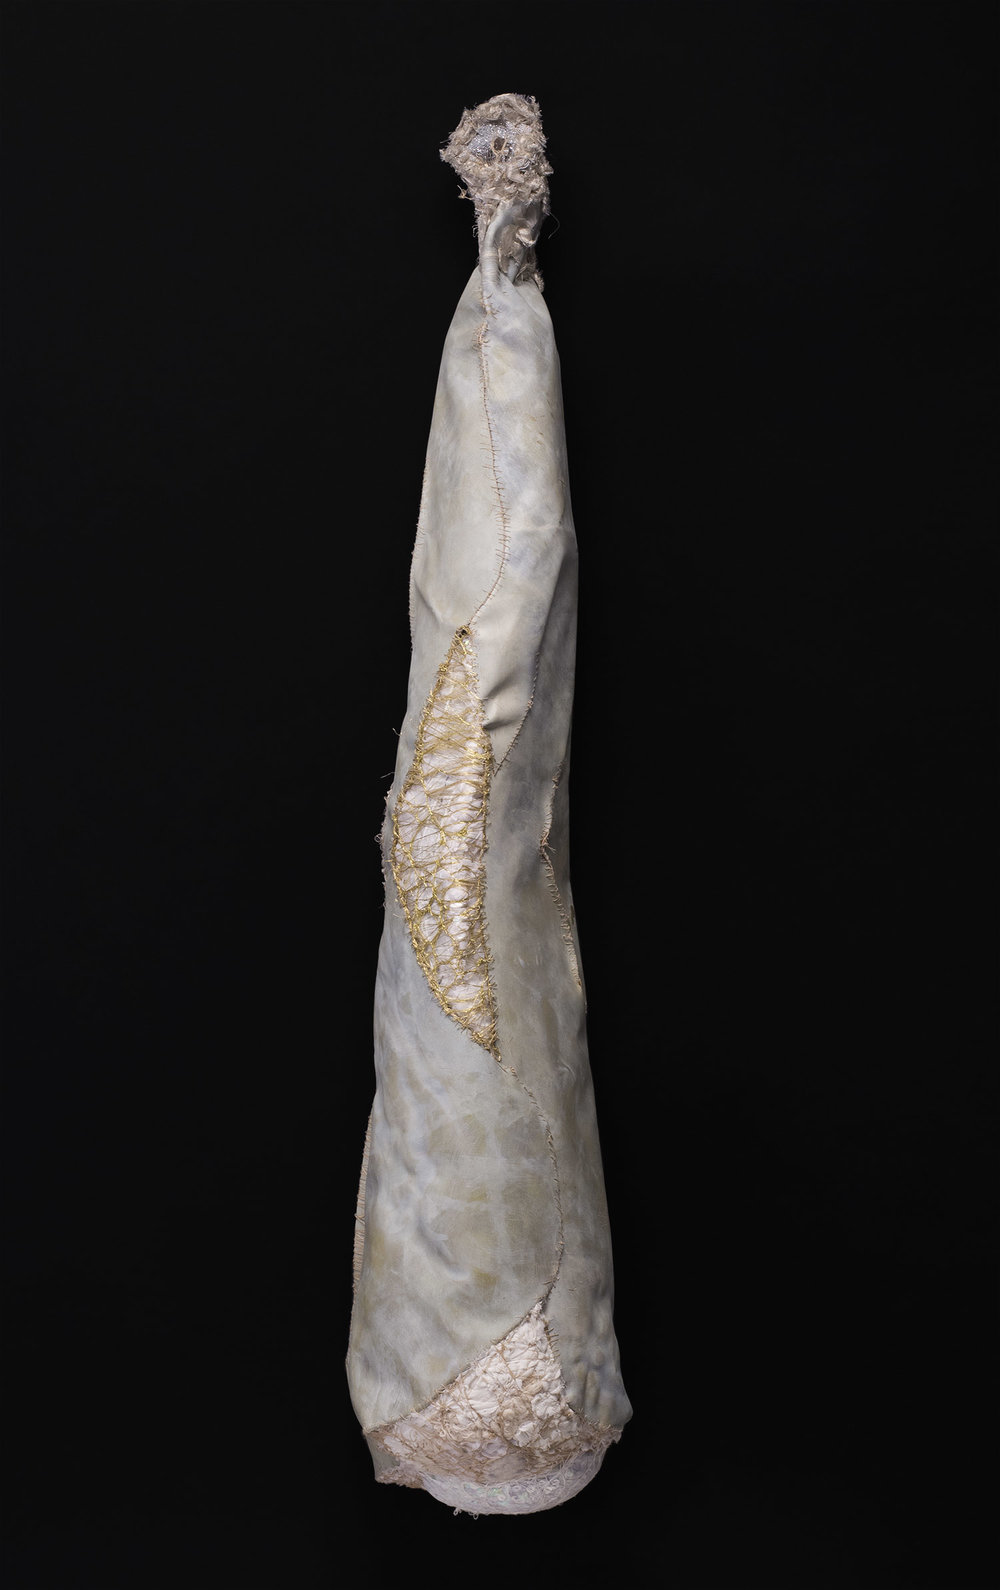 Sandra Sheehy Untitled, 2014 Mixed media/fabric 43 x 10 x 9 inches 109.2 x 25.4 x 22.9 cm SSe 86